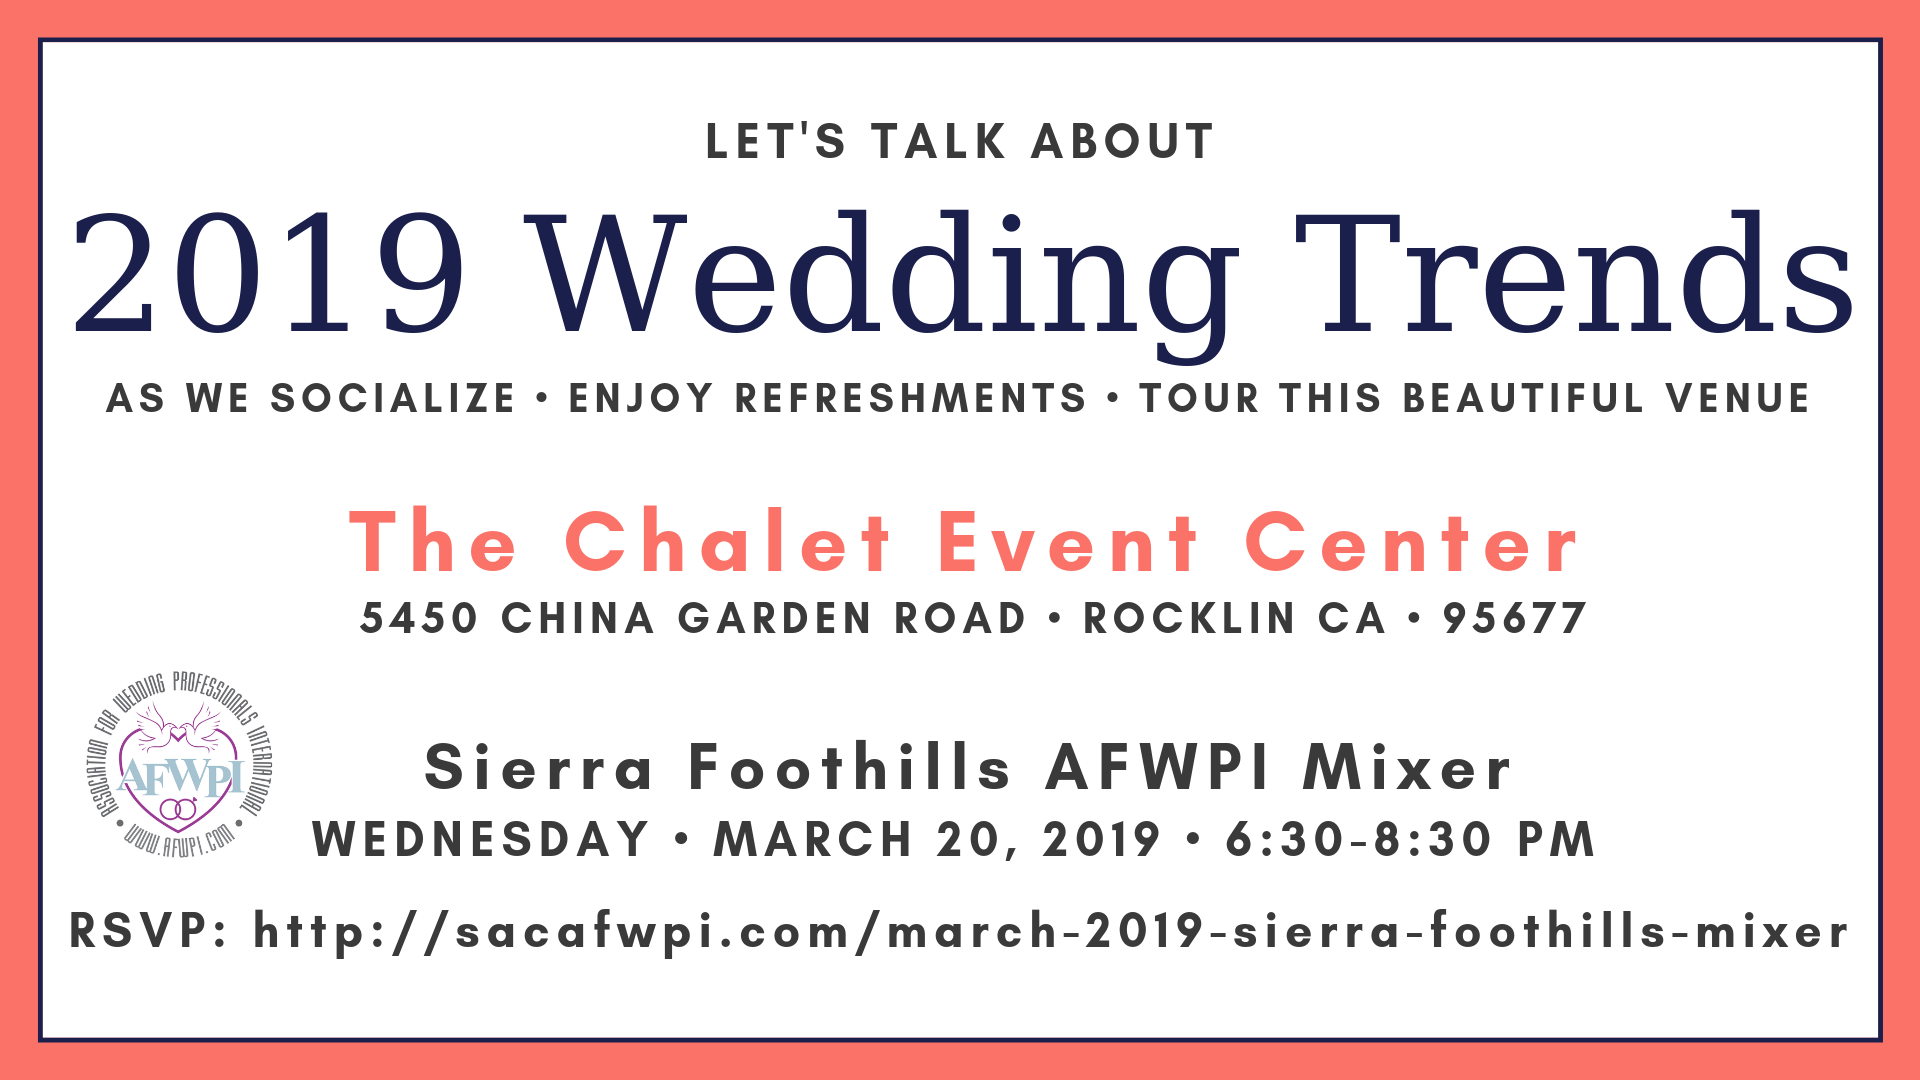 2019 Wedding Trends Placer wedding pros networking mixer